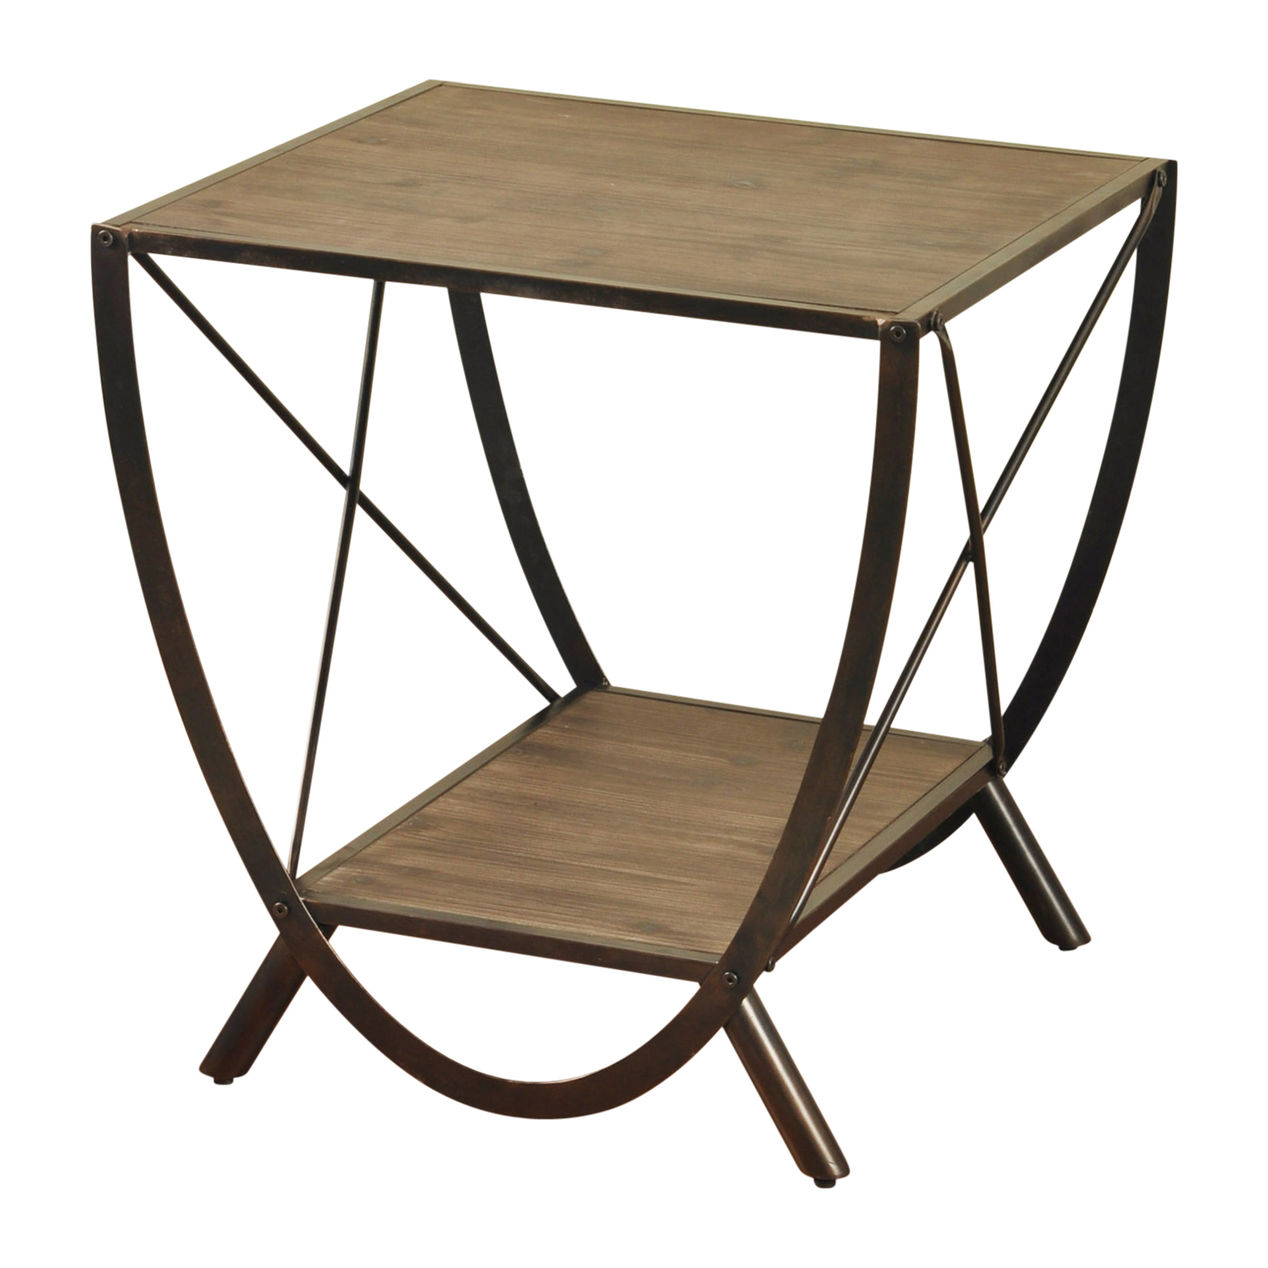 santa monica wooden side table home outdoor wood modern glass lamps lawn mowers ethan allen nesting tables dining room furniture nautical theme bathroom long centerpieces oak mat